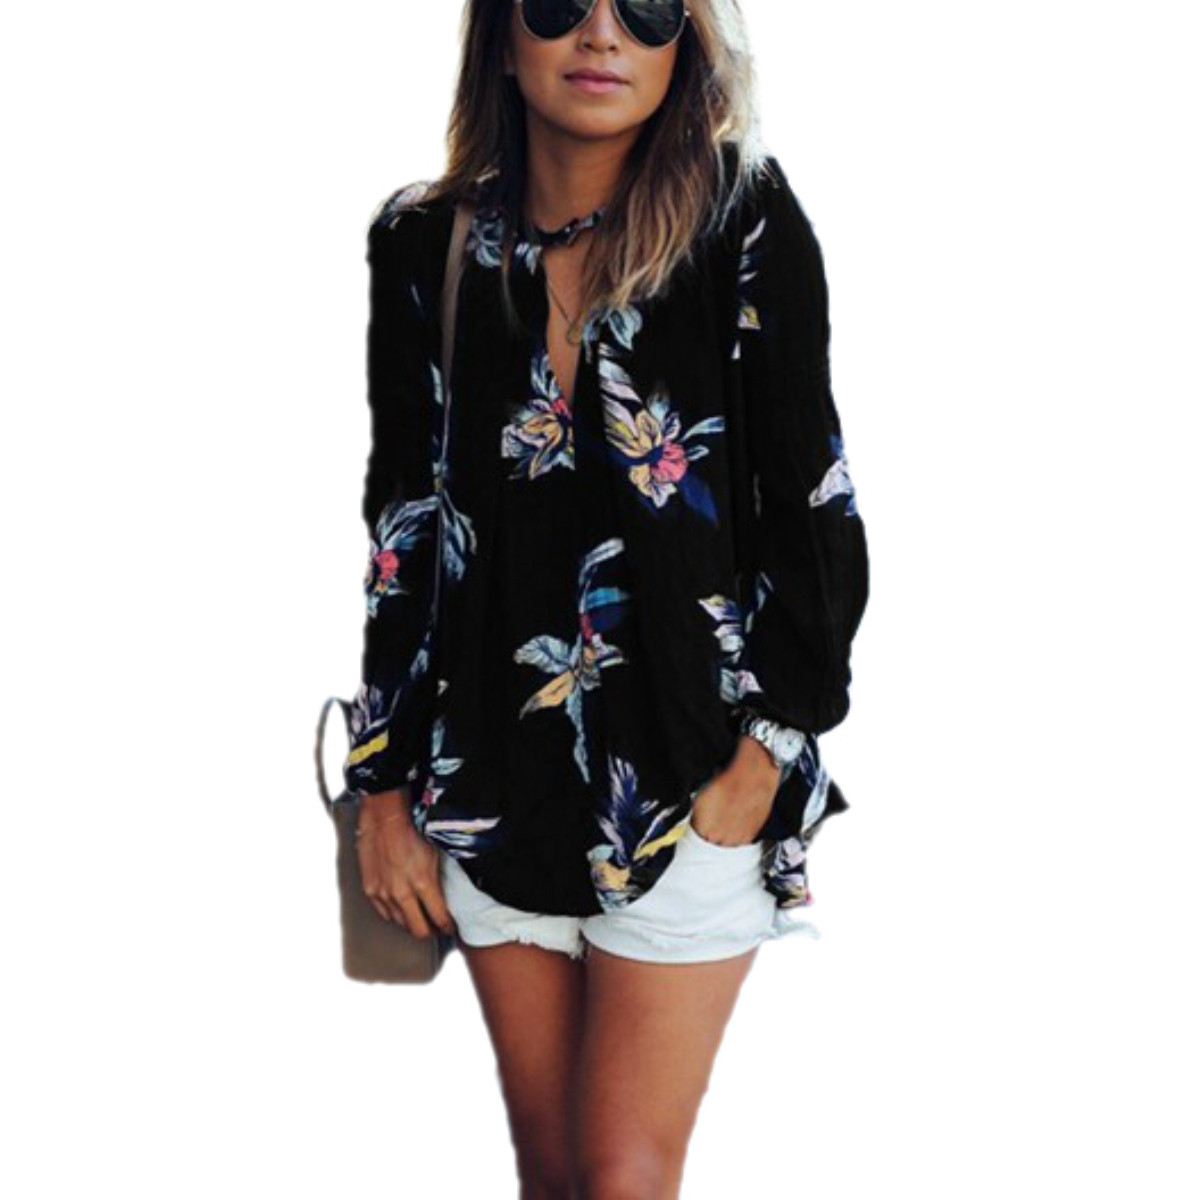 2016 New Fashion Street Women Blouse Floral Print Hollow Out Long Sleeve Shirt Brand Lady Sexy